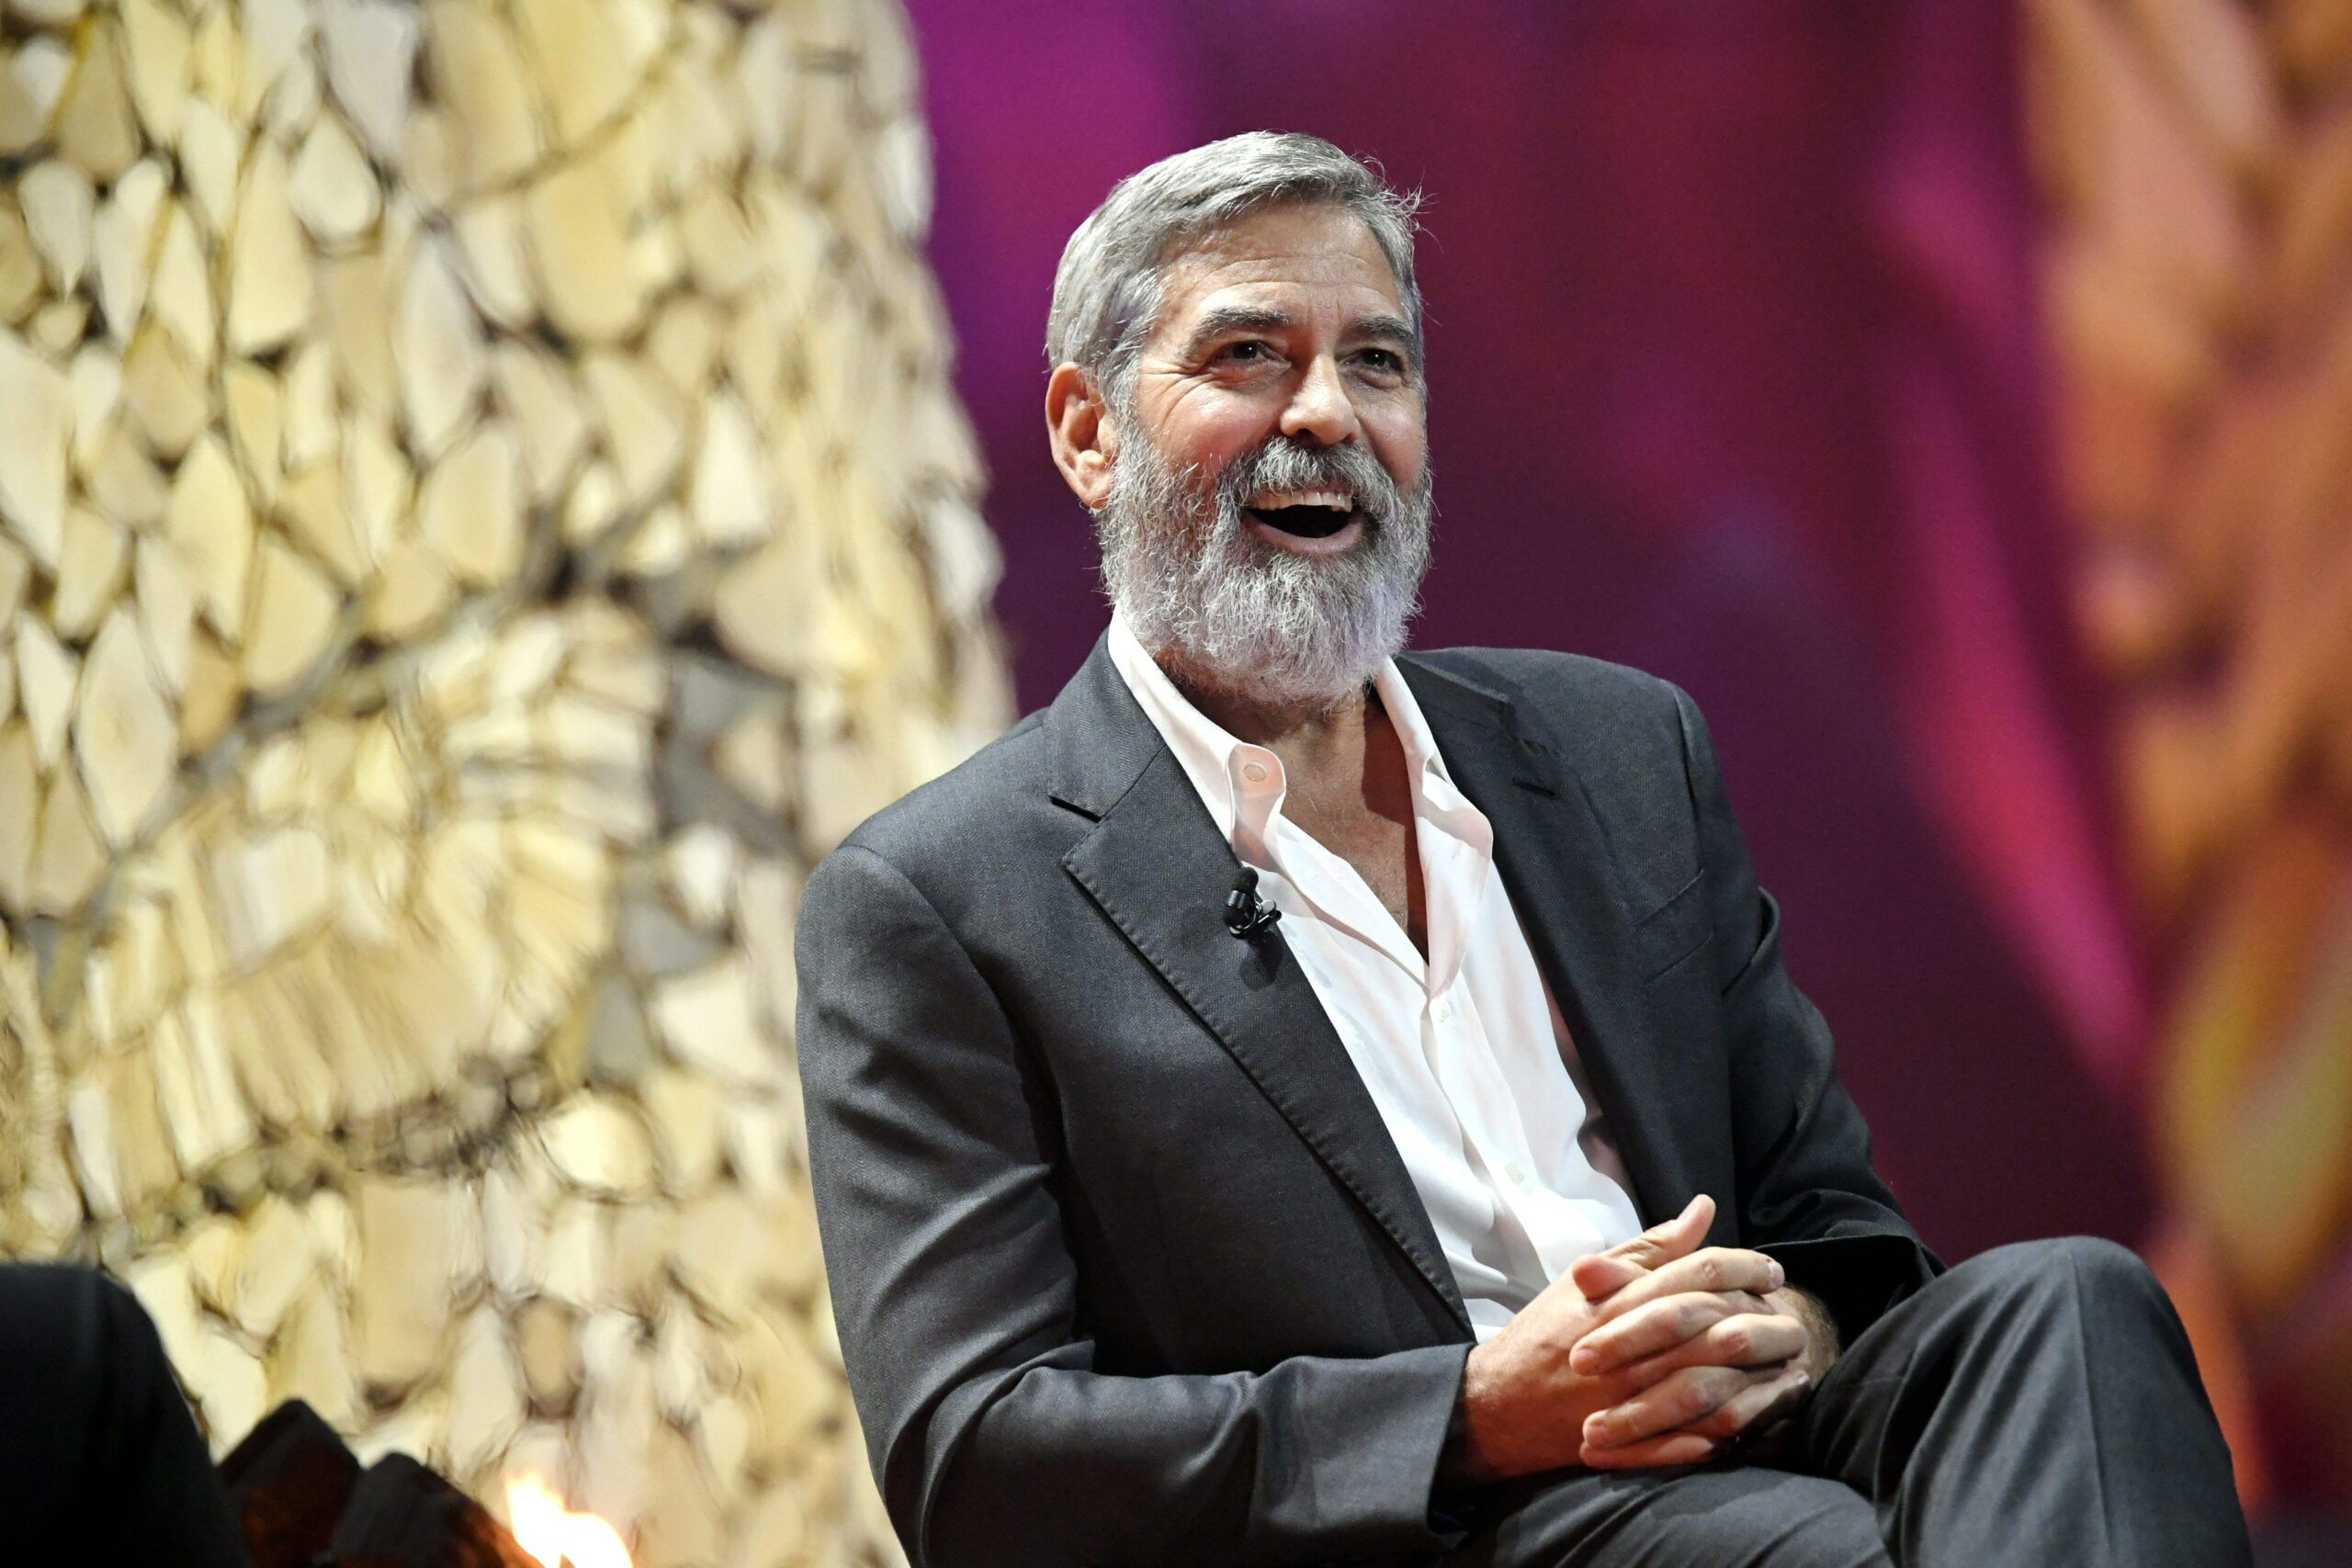 George Clooney Shares He Almost Starred In The Notebook Alongside Paul Newman